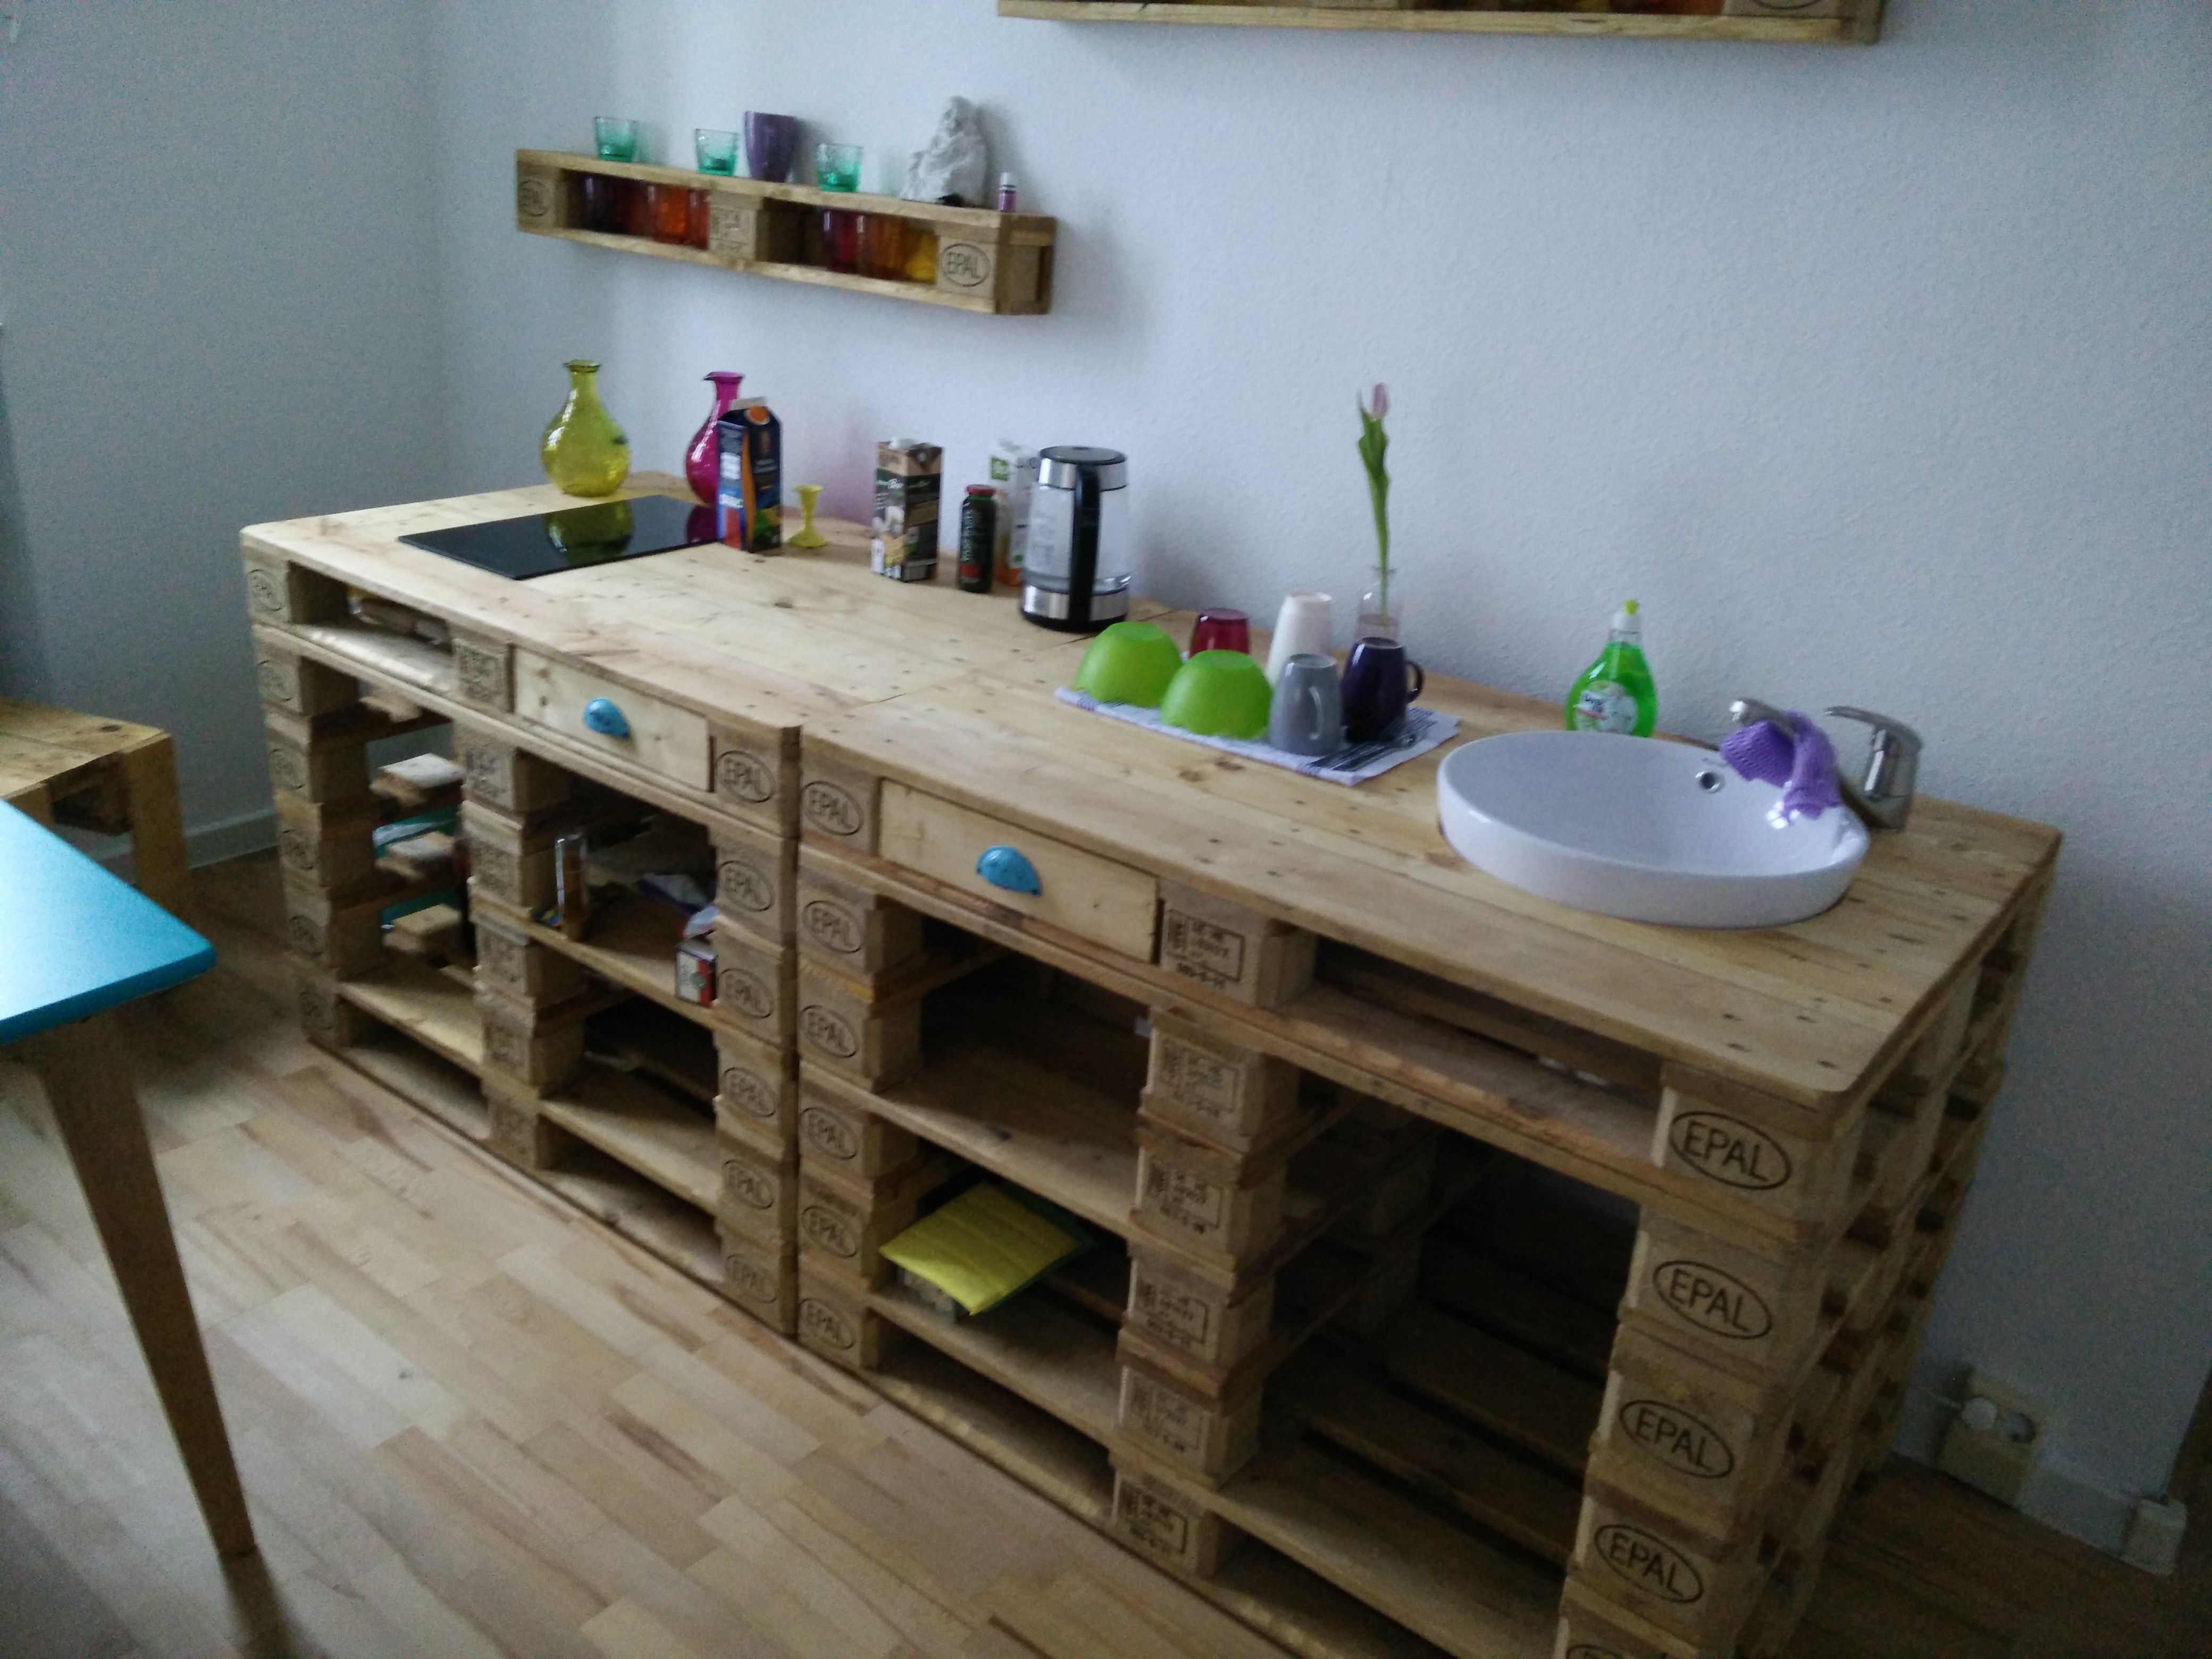 Instead Of Cheap Pressboard Cabinets Here S A Terrific Idea For A Mini Pallet Kitchenette For The Office It S Durabl Kitchenette Pallet Kitchen Wood Pallets